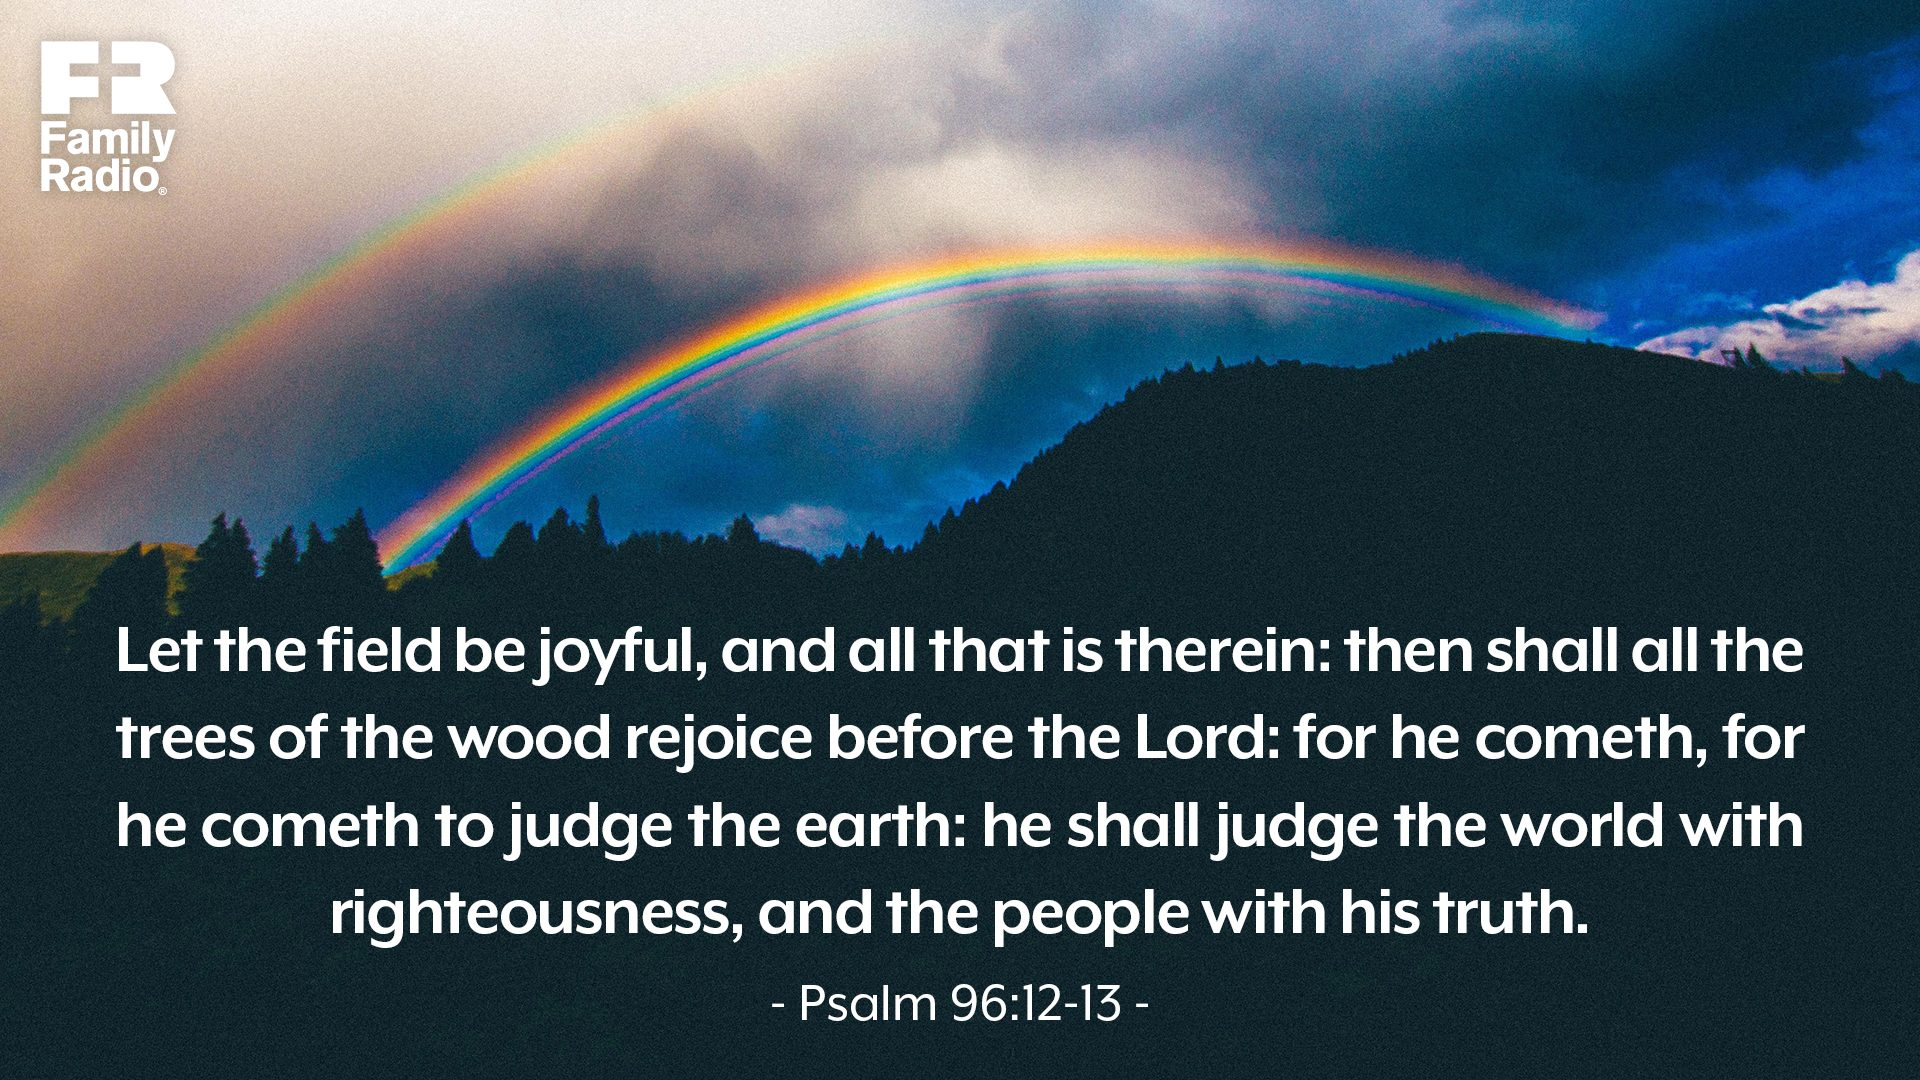 """Let the field be joyful, and all that is therein: then shall all the trees of the wood rejoice before the Lord: for he cometh, for he cometh to judge the earth: he shall judge the world with righteousness, and the people with his truth."""